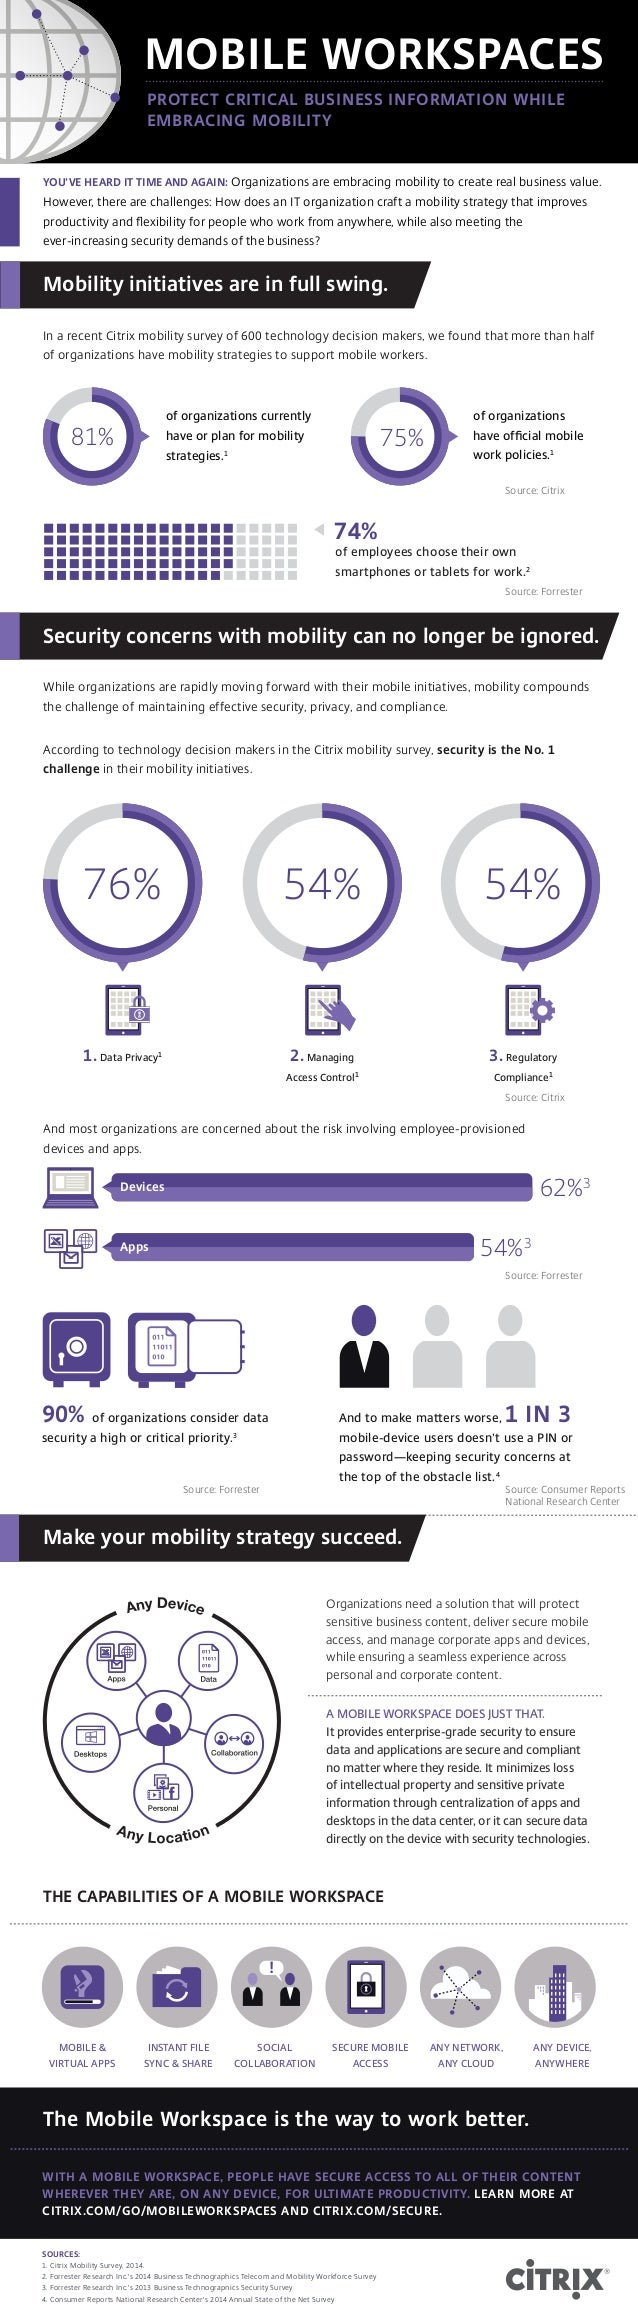 MOBILE WORKSPACES PROTECT CRITICAL BUSINESS INFORMATION WHILE EMBRACING MOBILITY Mobility initiatives are in full swing. I...